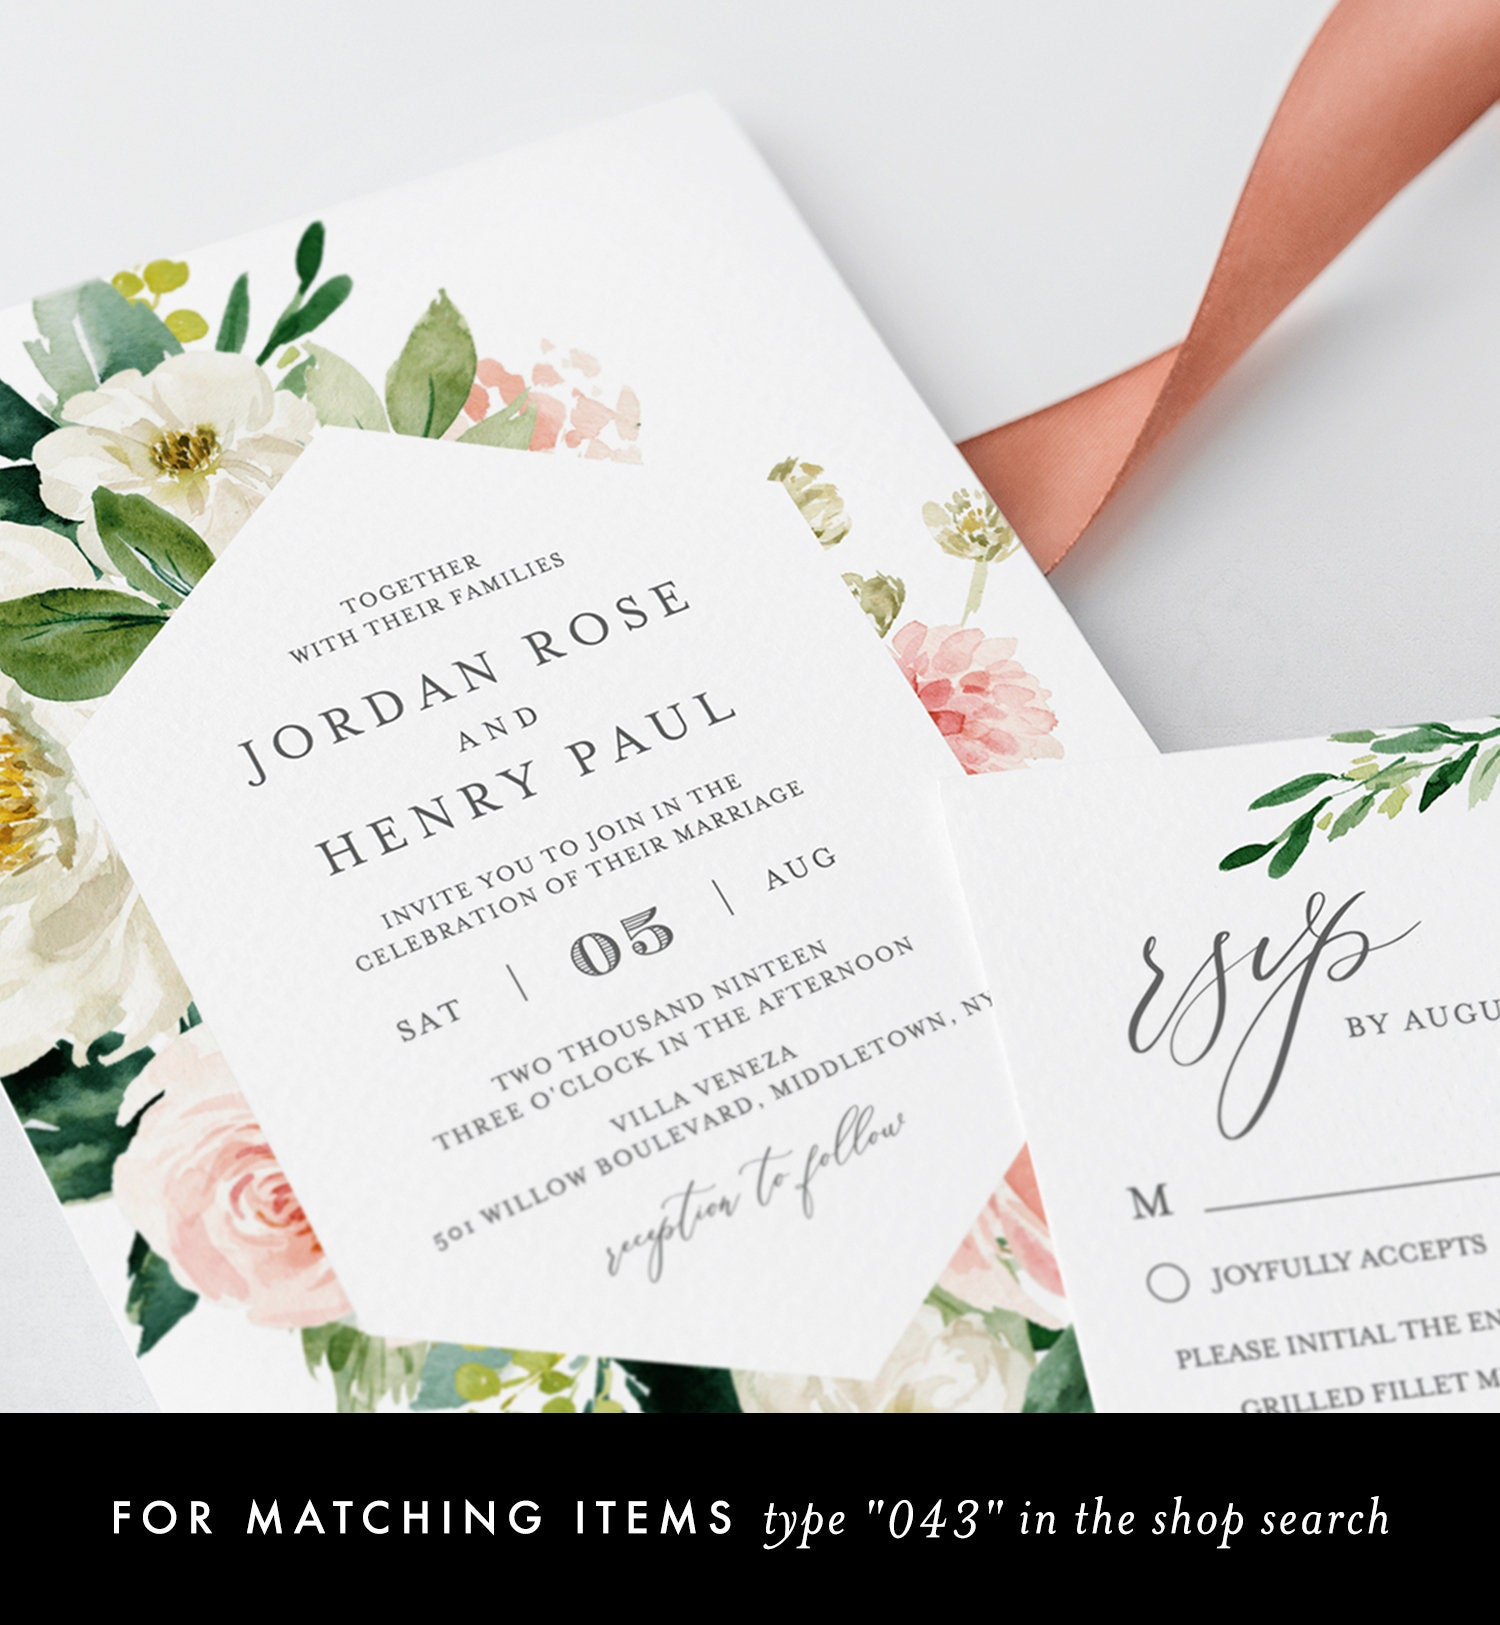 Rustic Invites Vintage Floral Wedding Invite Editable pdf Templett DUSTY Save the Date INSTANT DOWNLOAD diy Printable Save the Date